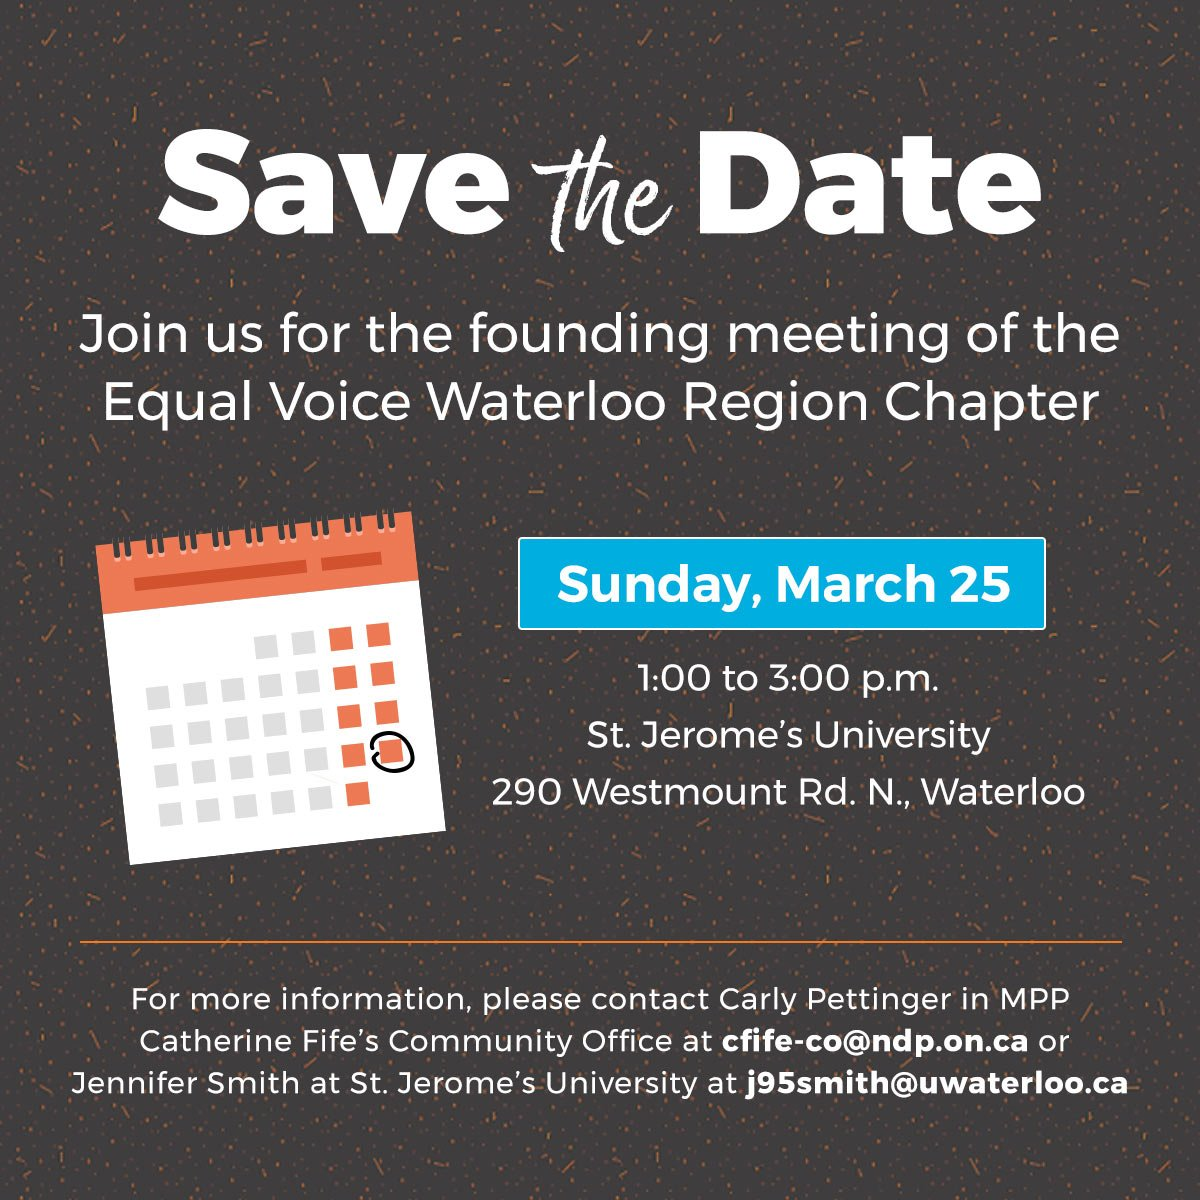 Founding meeting of the Equal Voice Waterloo Region Chapter @ St. Jerome's University | Waterloo | Ontario | Canada